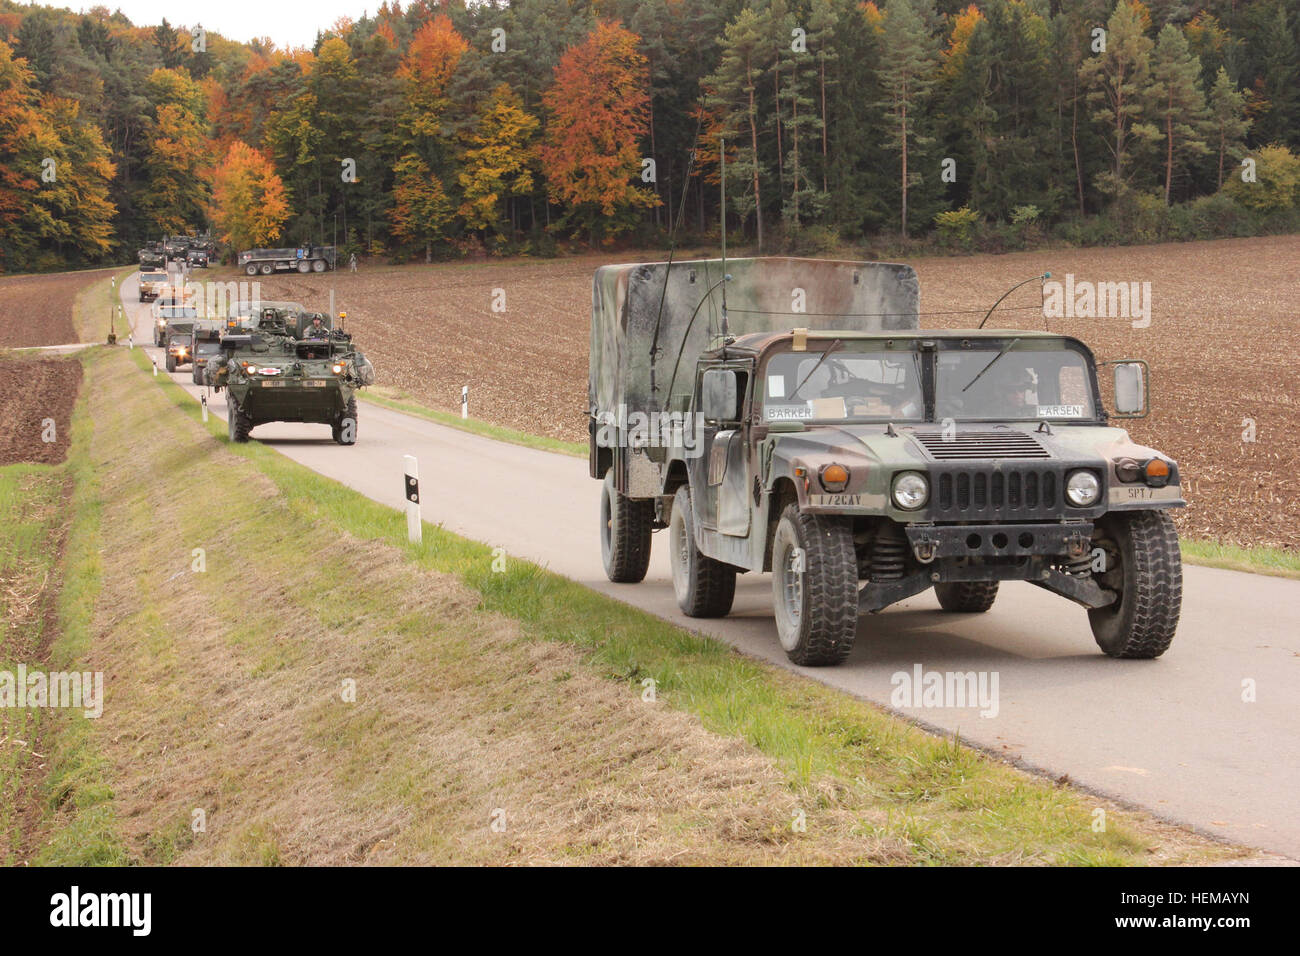 U.S. Army Soldiers of 1st Squadron, 2nd Cavalry Regiment conduct a convoy during a decisive action training environment - Stock Image